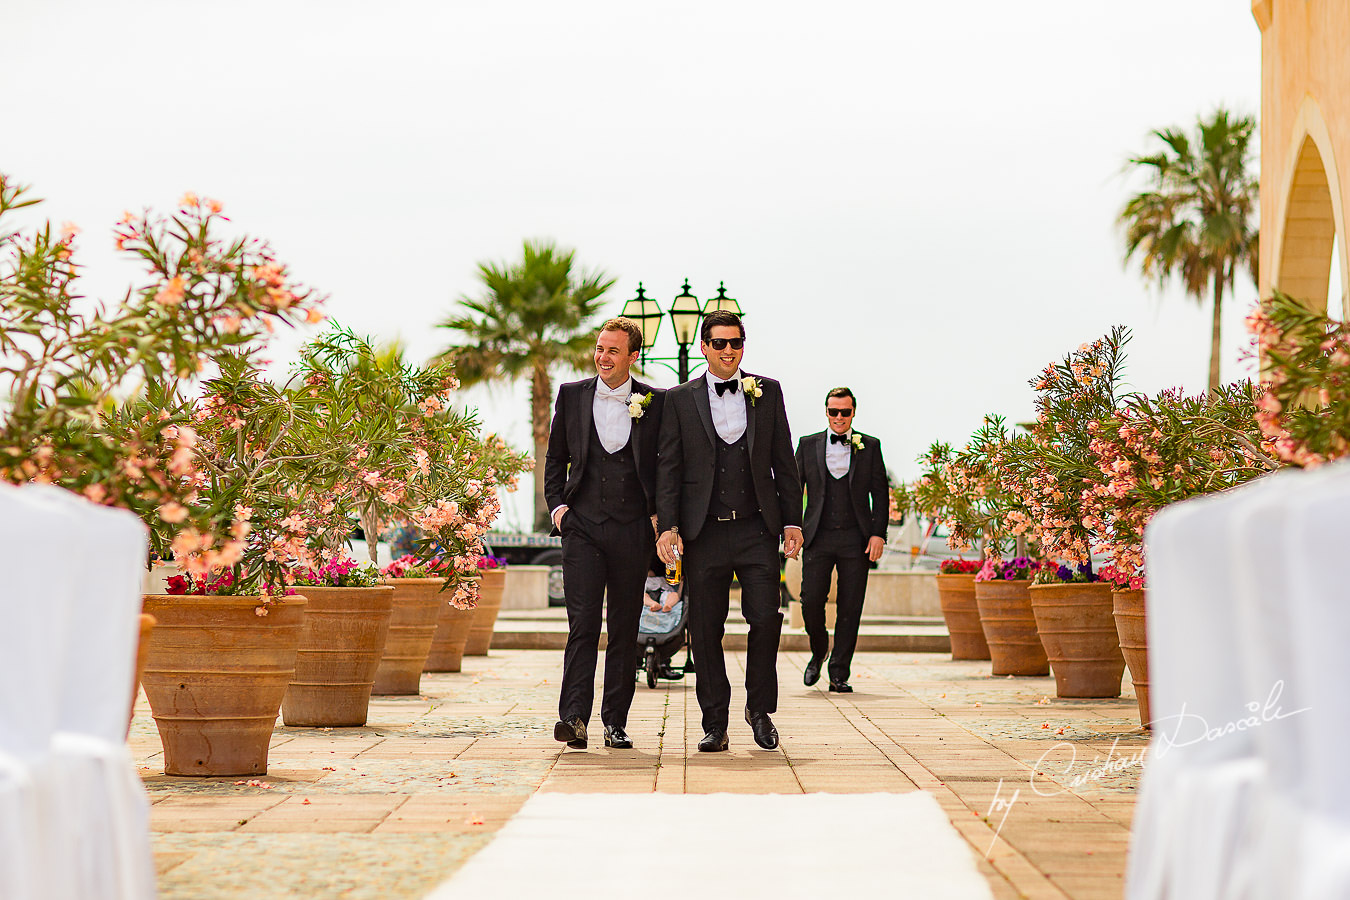 Amazing Wedding Photography at the Elysium Hotel by Cyprus Wedding Photographer Cristian Dascalu.